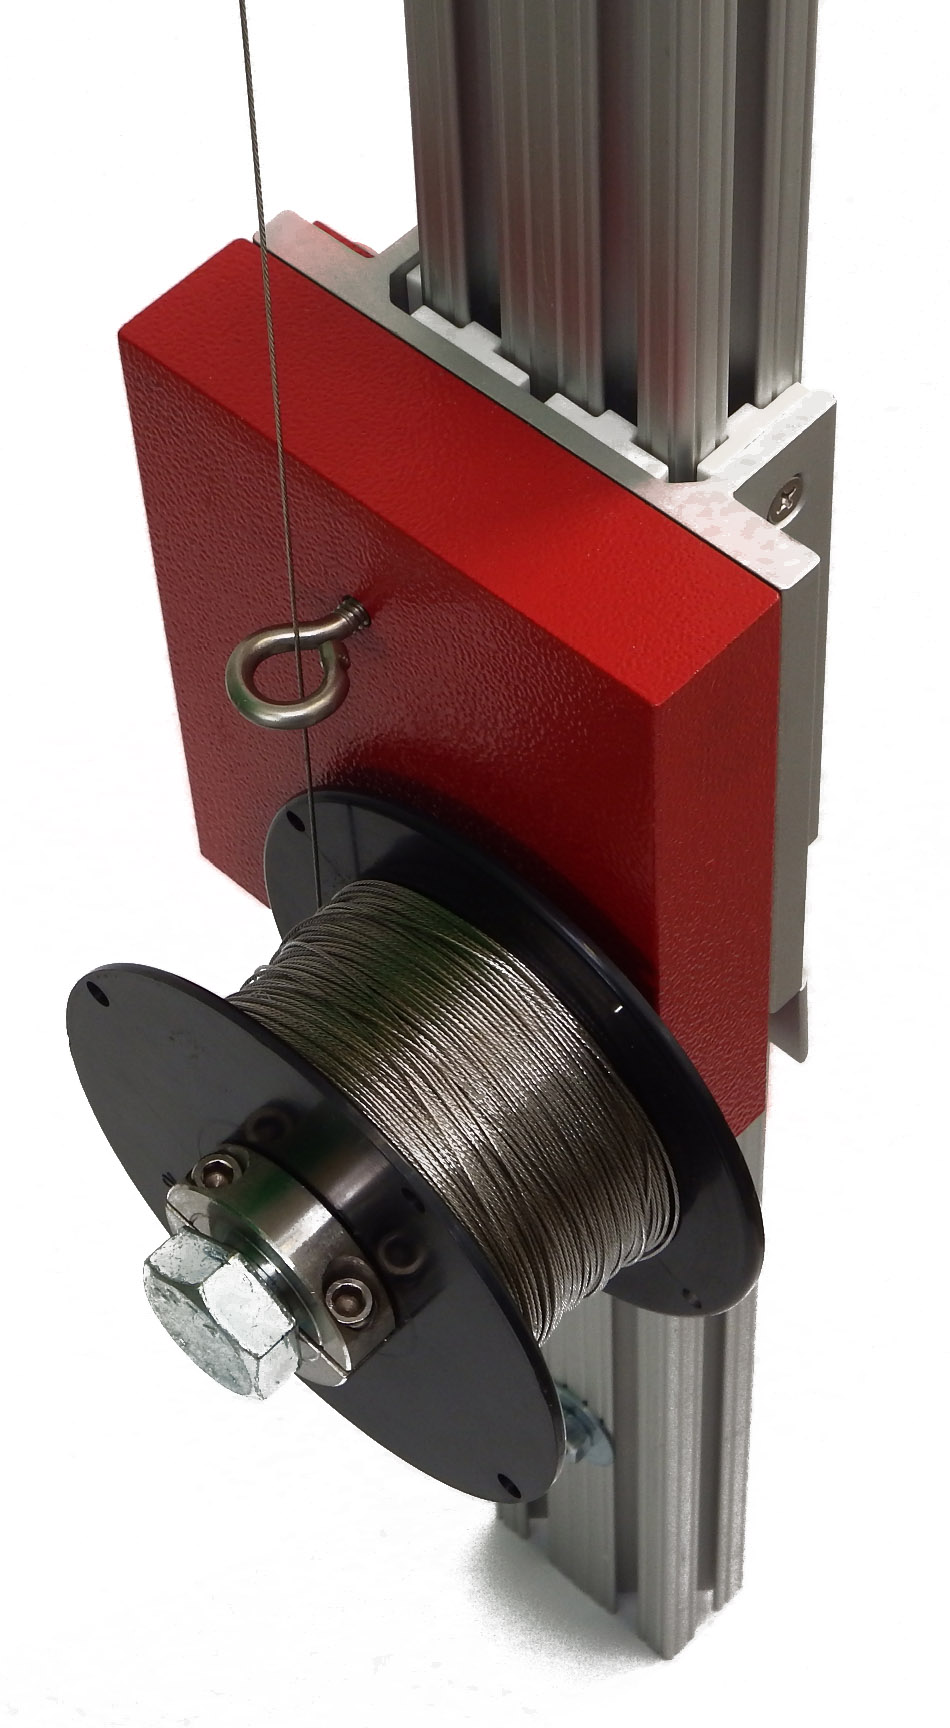 600' (183cm) of specialty wire provides strength with minimal thermal expansion